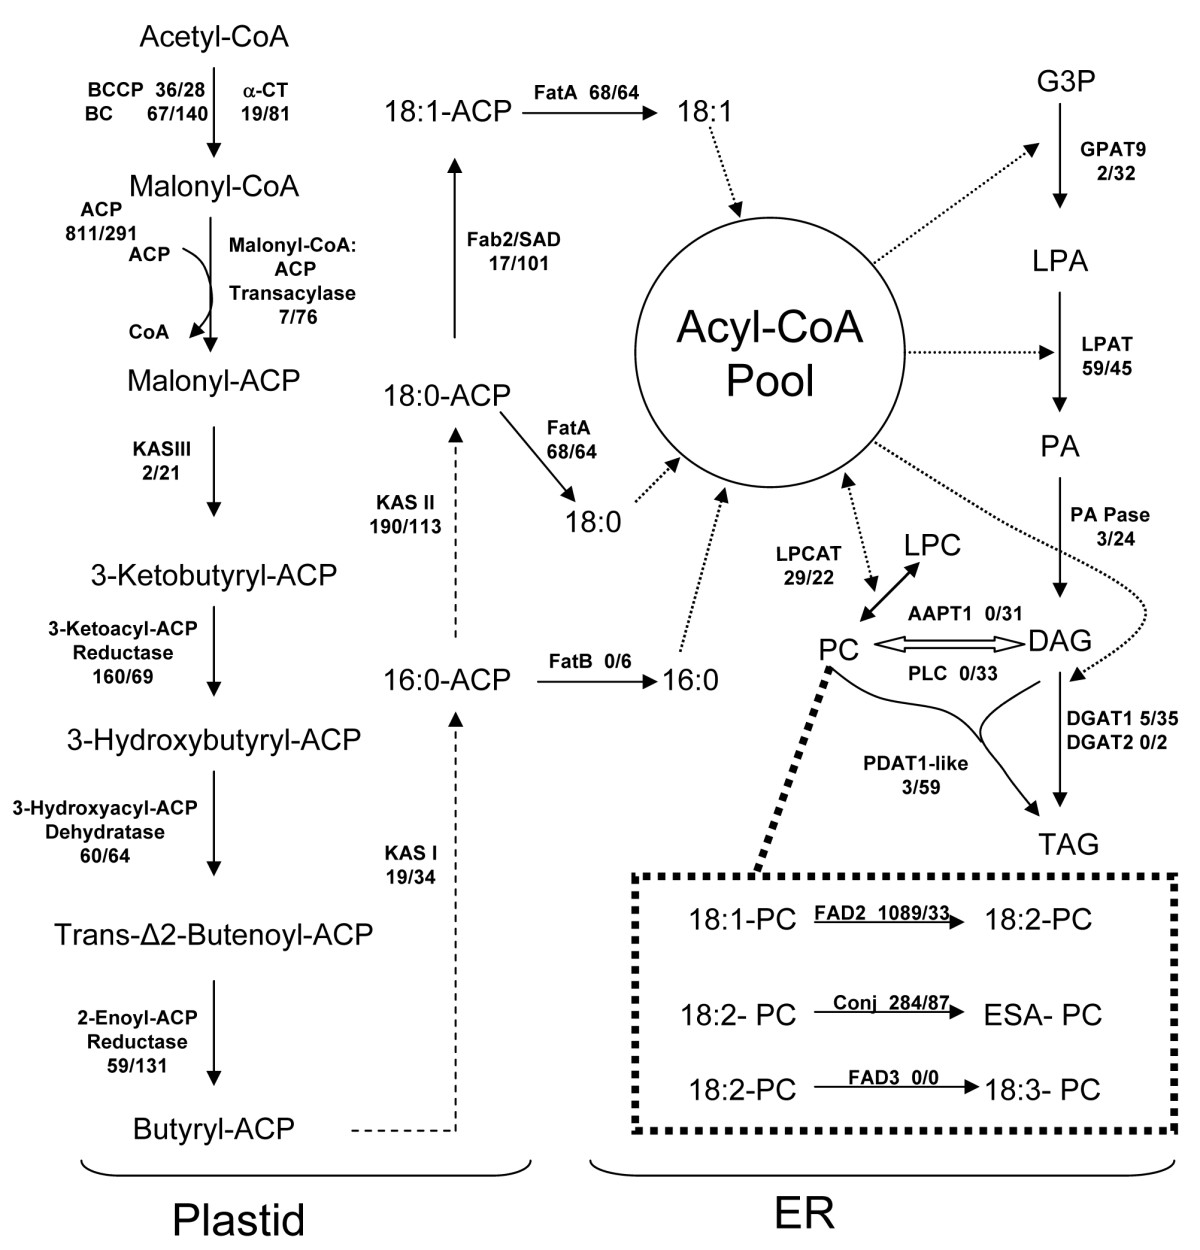 https://static-content.springer.com/image/art%3A10.1186%2F1471-2229-10-250/MediaObjects/12870_2010_Article_744_Fig6_HTML.jpg